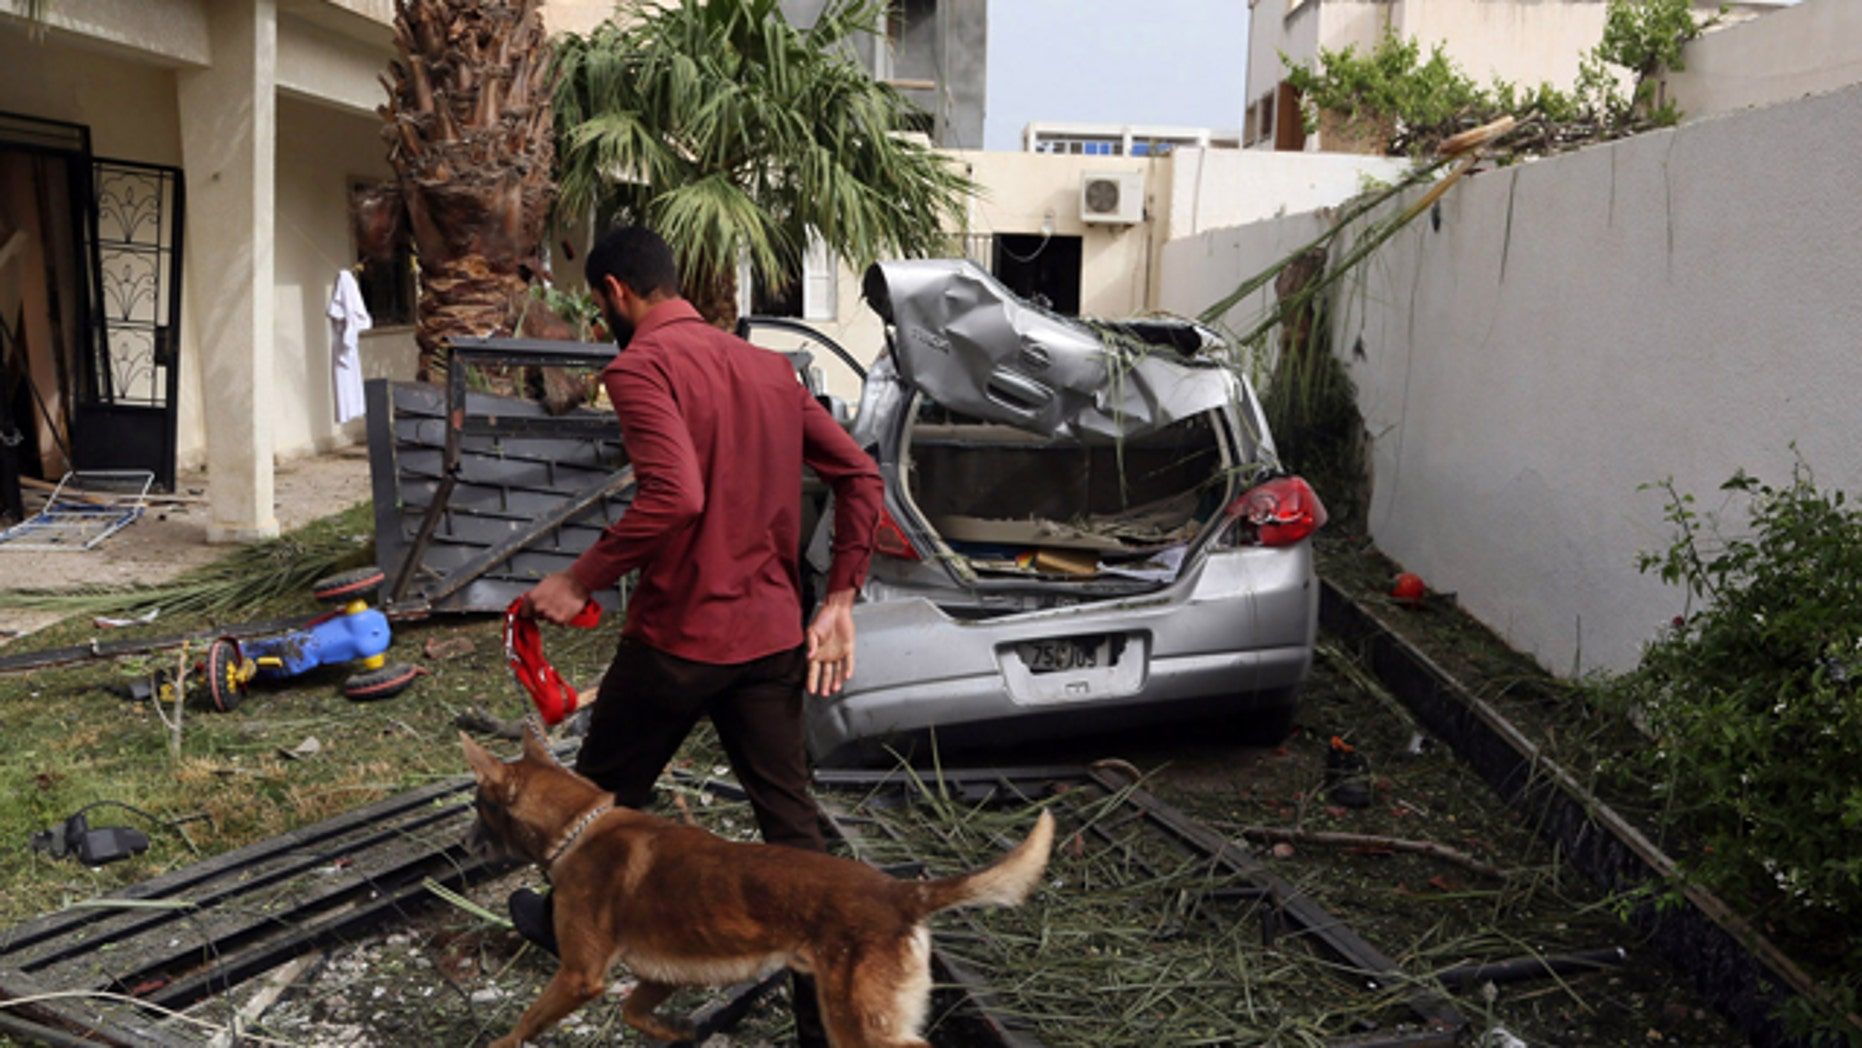 April 23, 2013: A security officer using a sniffer dog inspects the site of a car bomb that targeted the French embassy wounding two French guards and causing extensive material damage in Tripoli, Libya.